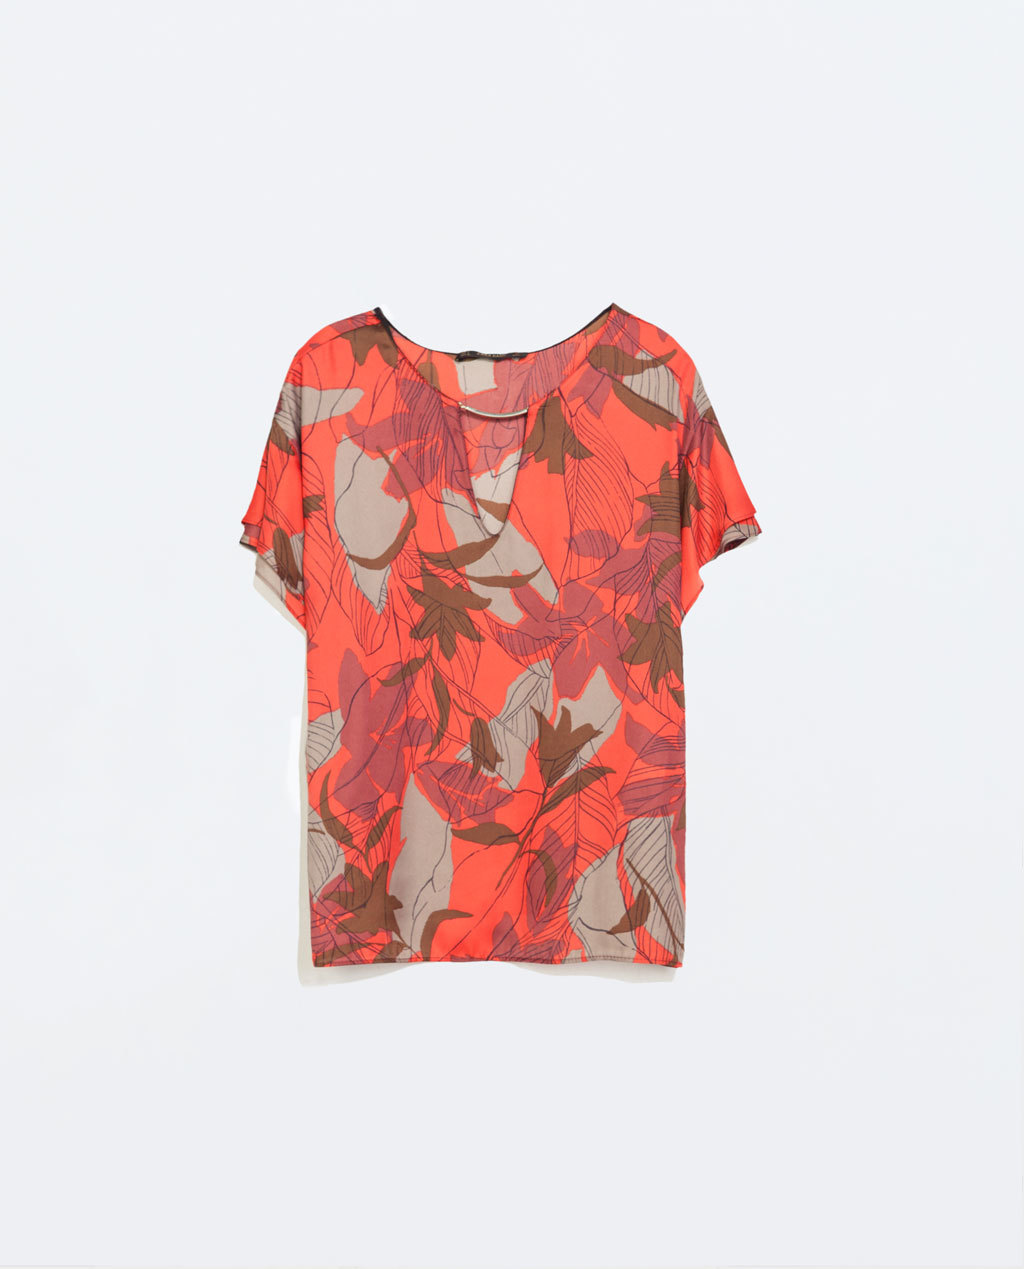 Printed Top With Applique - sleeve style: angel/waterfall; predominant colour: bright orange; secondary colour: taupe; occasions: casual, creative work; length: standard; style: top; neckline: peep hole neckline; fibres: polyester/polyamide - 100%; fit: loose; sleeve length: short sleeve; pattern type: fabric; pattern size: standard; pattern: patterned/print; texture group: other - light to midweight; trends: zesty shades; season: a/w 2014